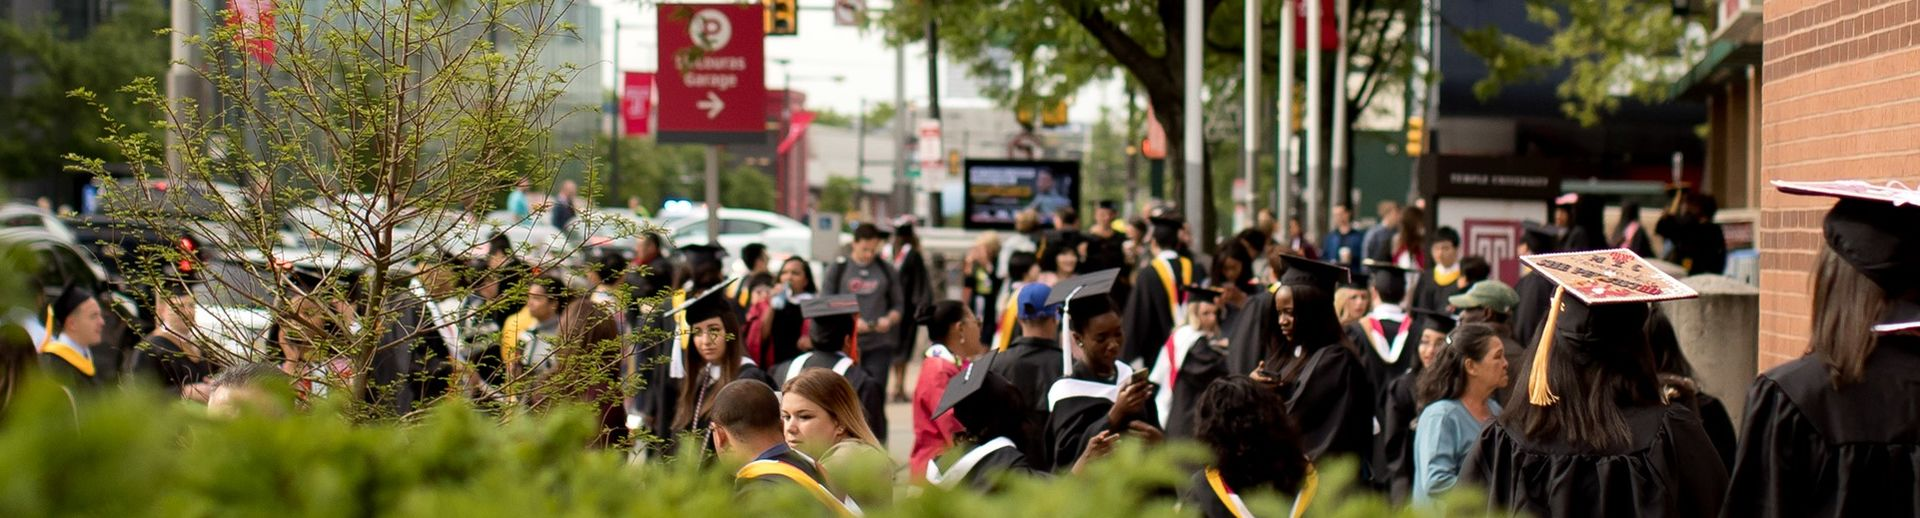 Students gathering on broad st for Commencement